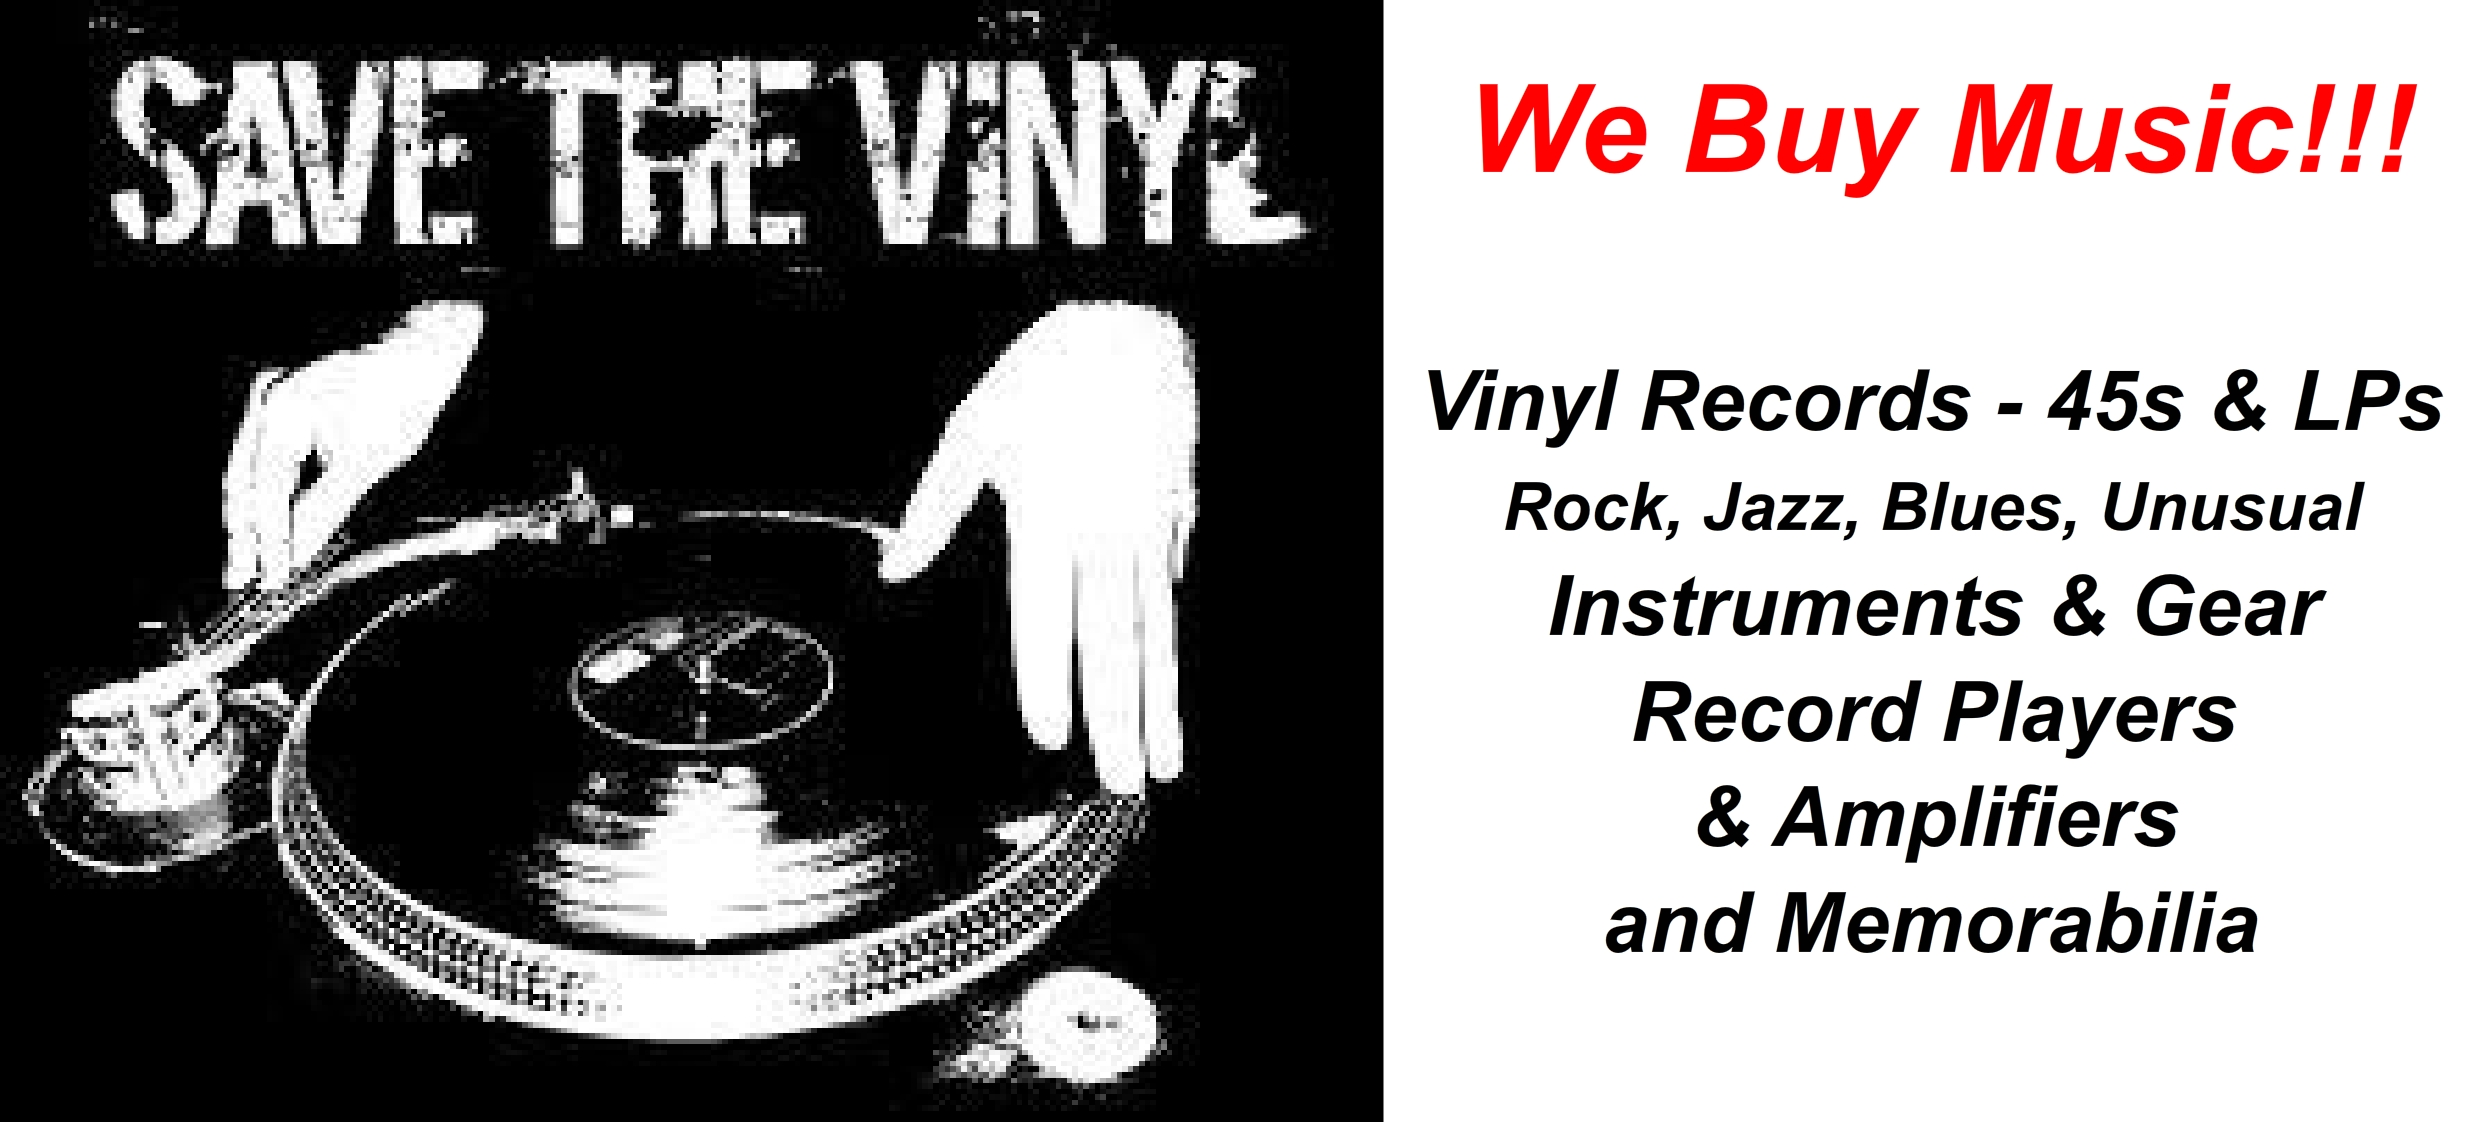 Vinyl Records, Equipment, Memorabilia